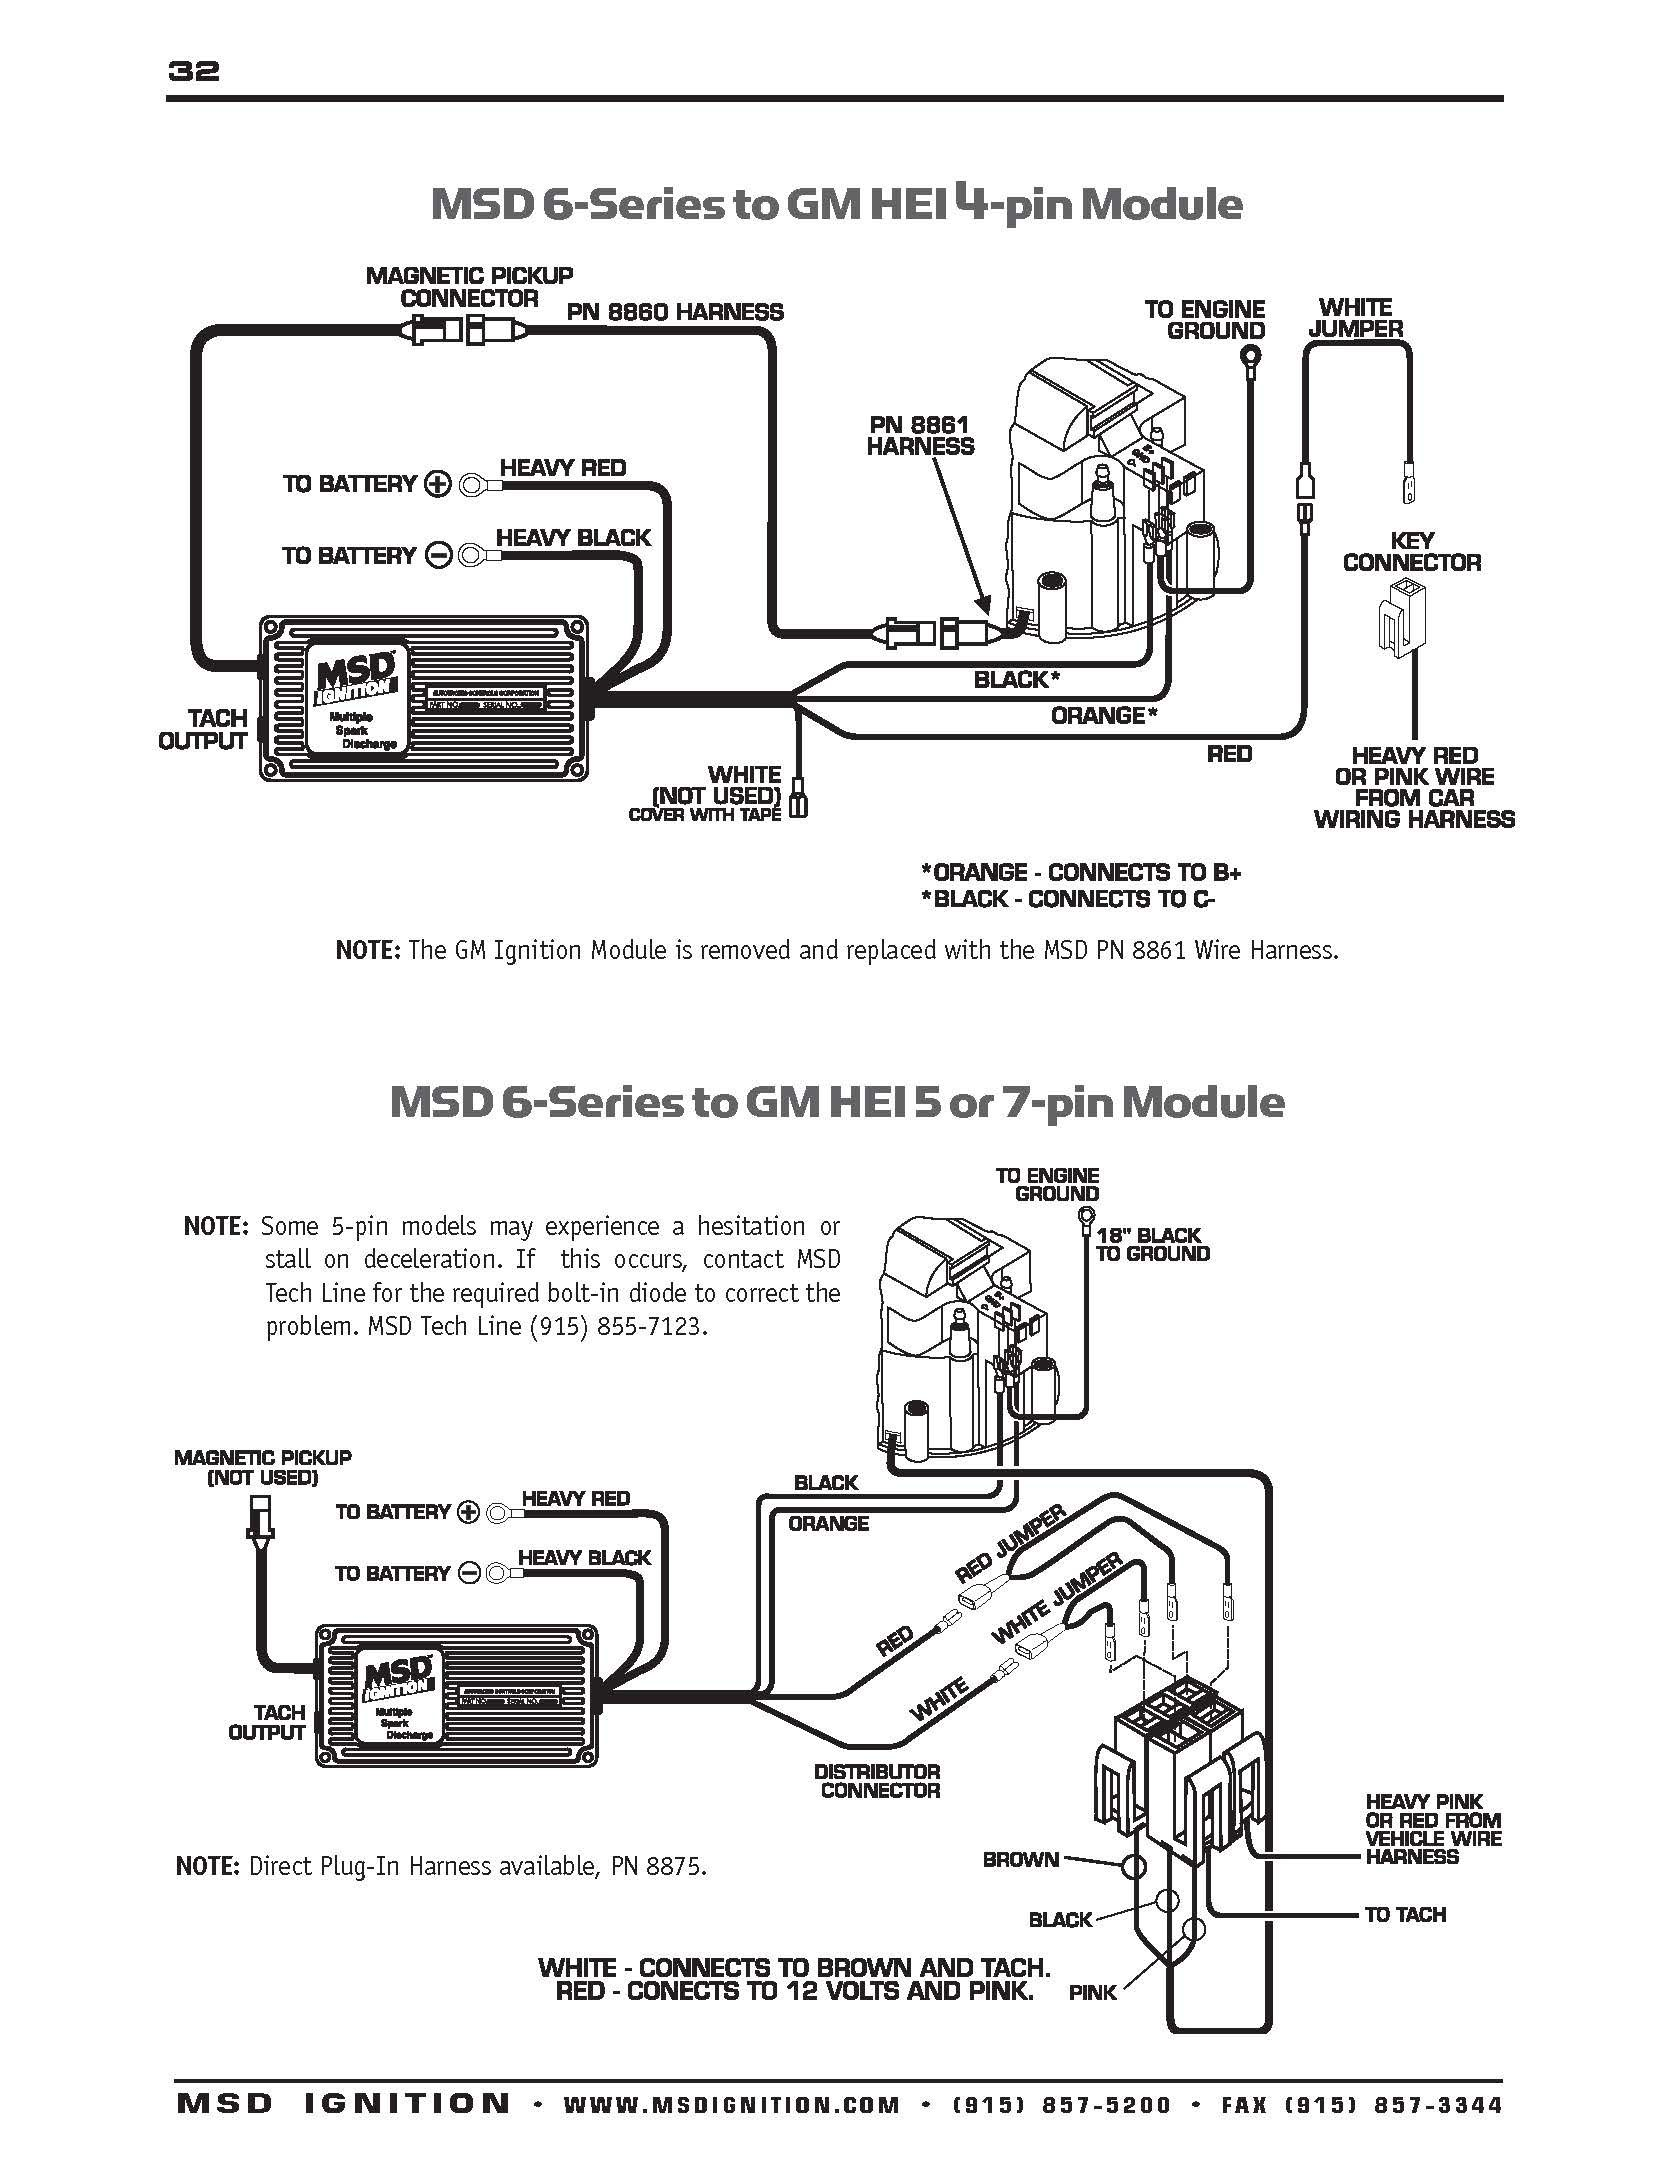 hight resolution of msd ignition wiring diagrams 1966 chevelle diagram automotive spark plug wire diagram 2001 dodge ram 1500 ignition wire diagram